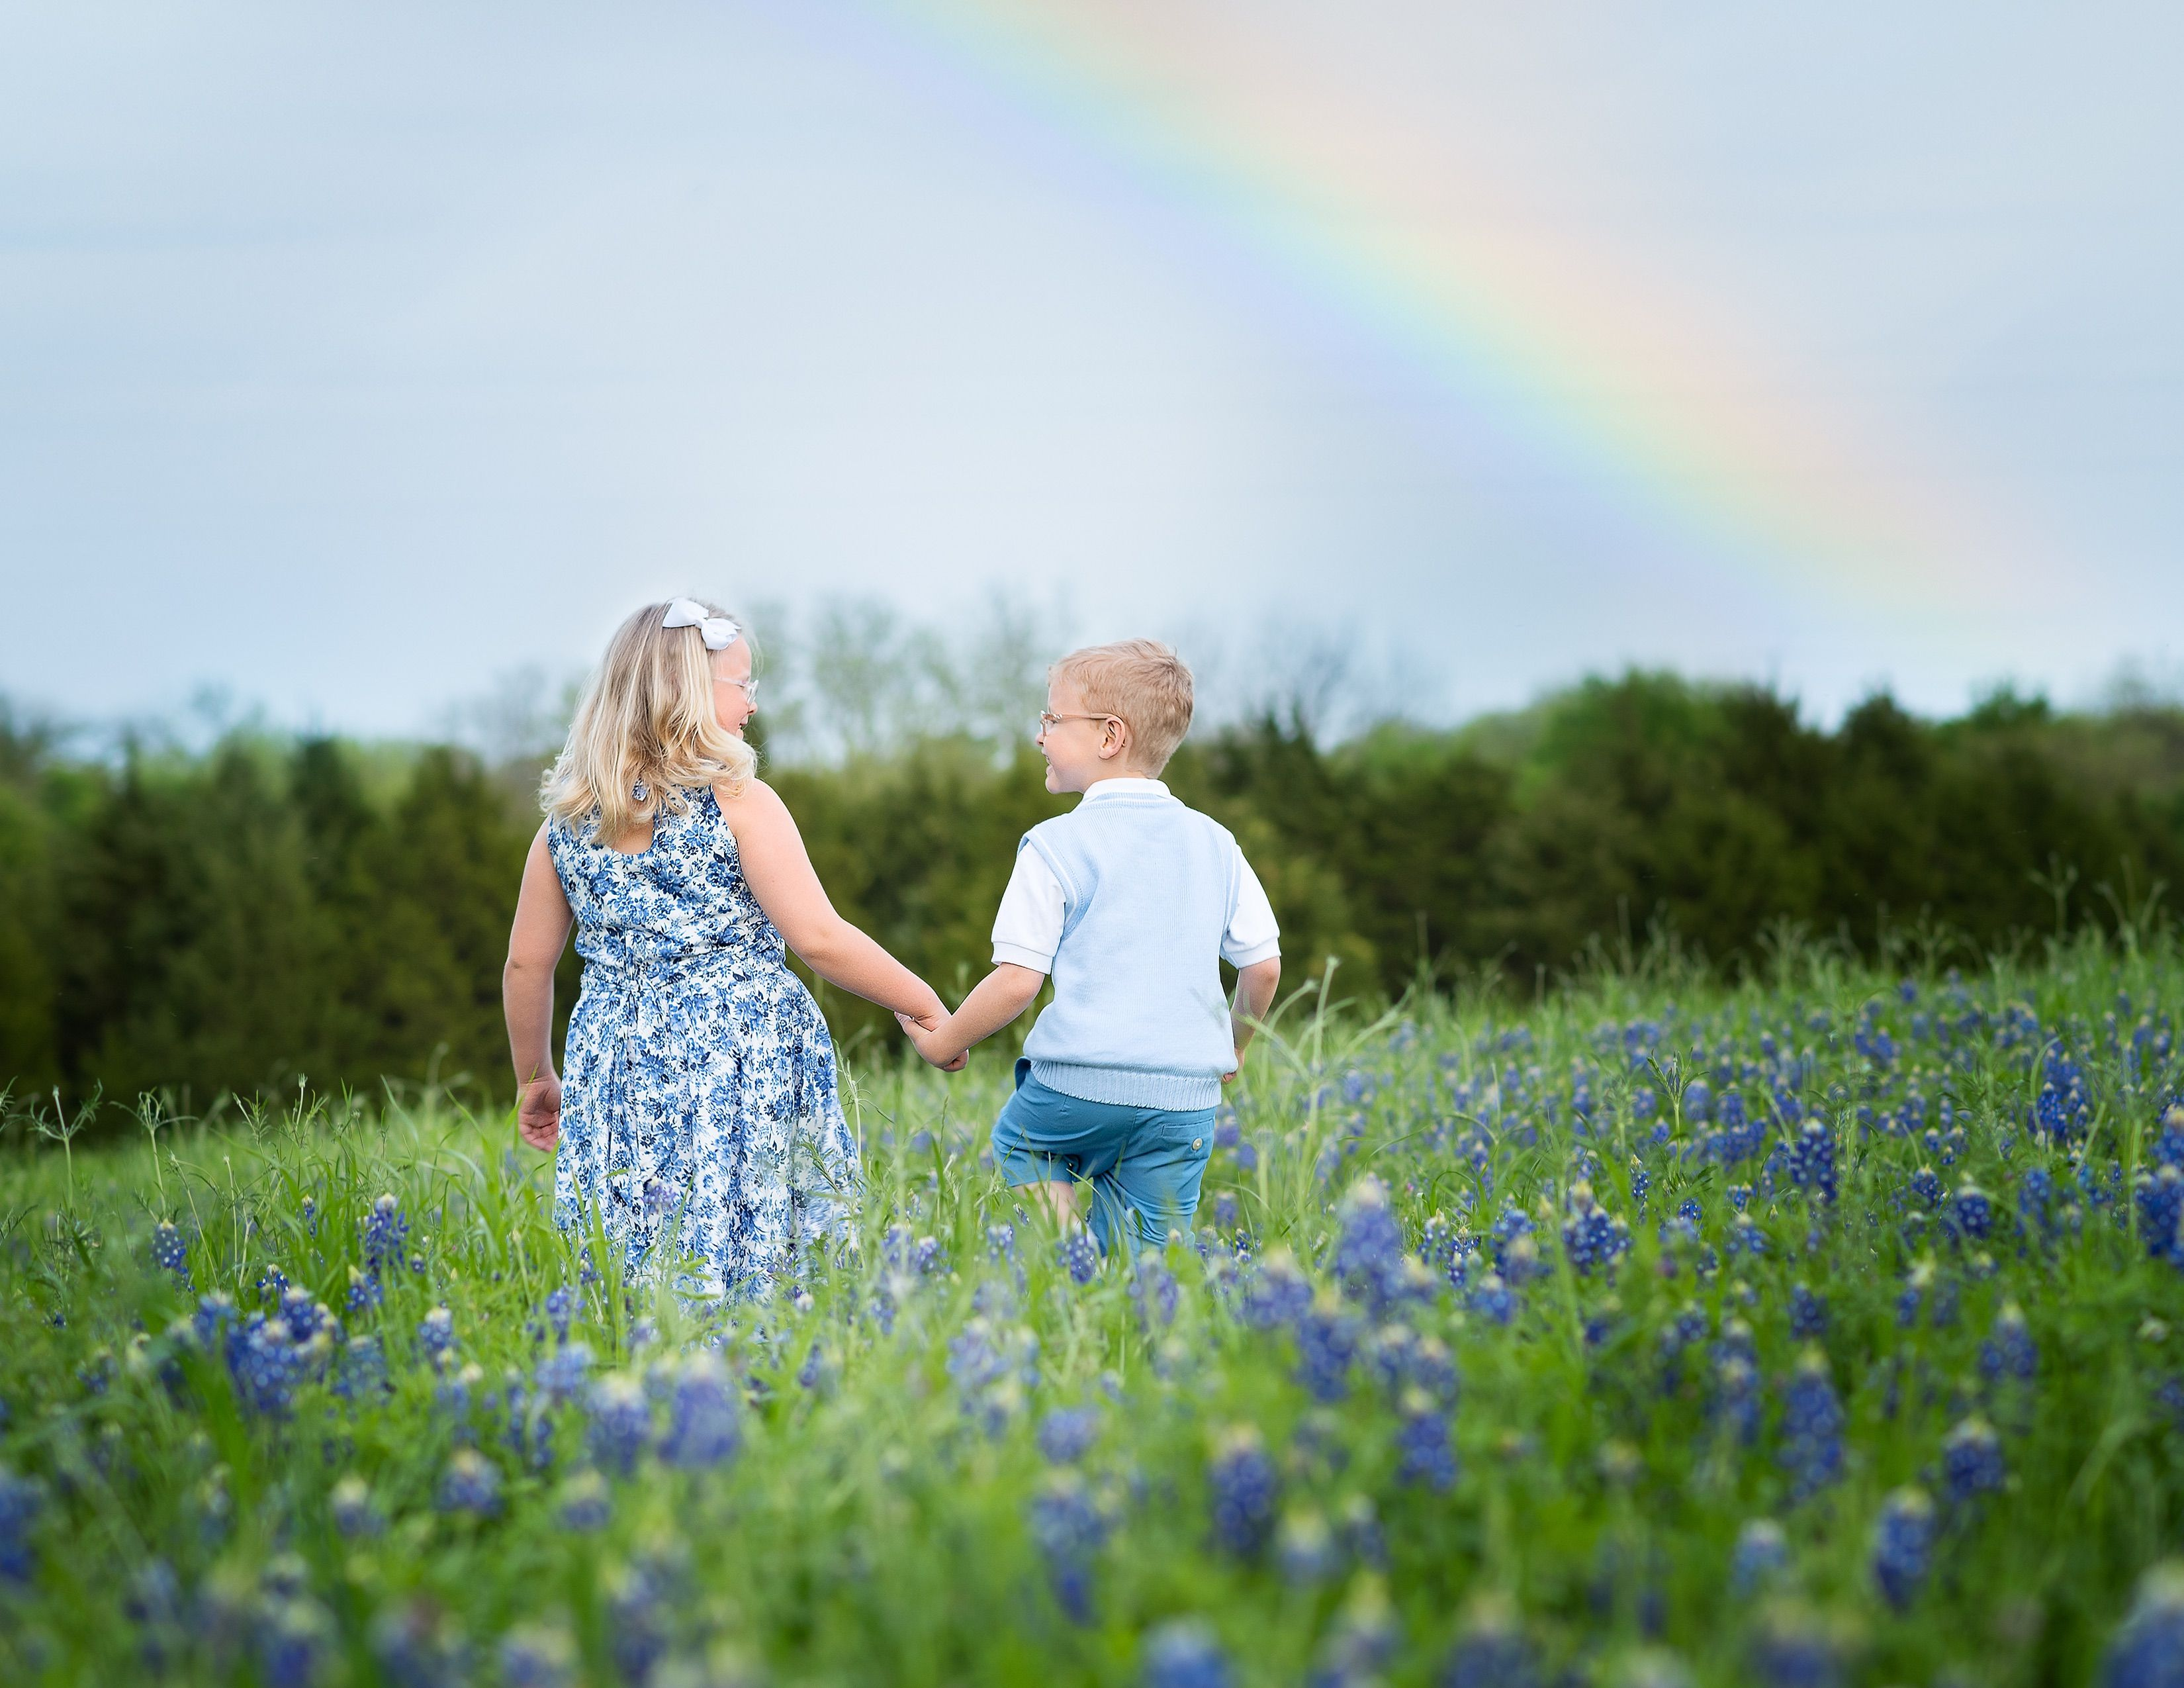 Texas Bluebonnet Session With Alicia Wilson Photography In Rockwall Texas In 2020 Photography Lifestyle Newborn Photography Mini Sessions